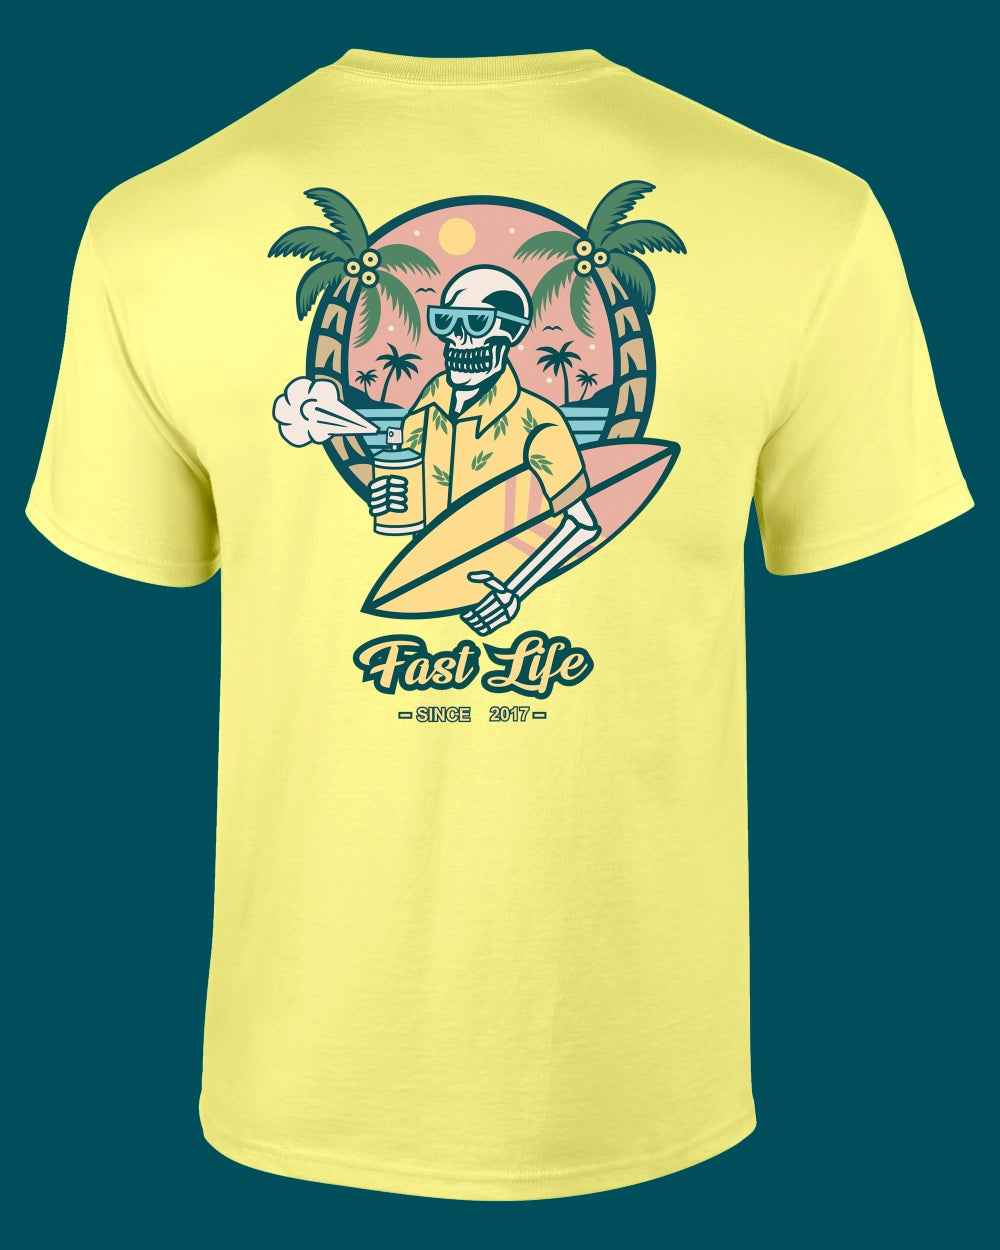 Tee-shirt Summer Vibes 2021 by Fast Life